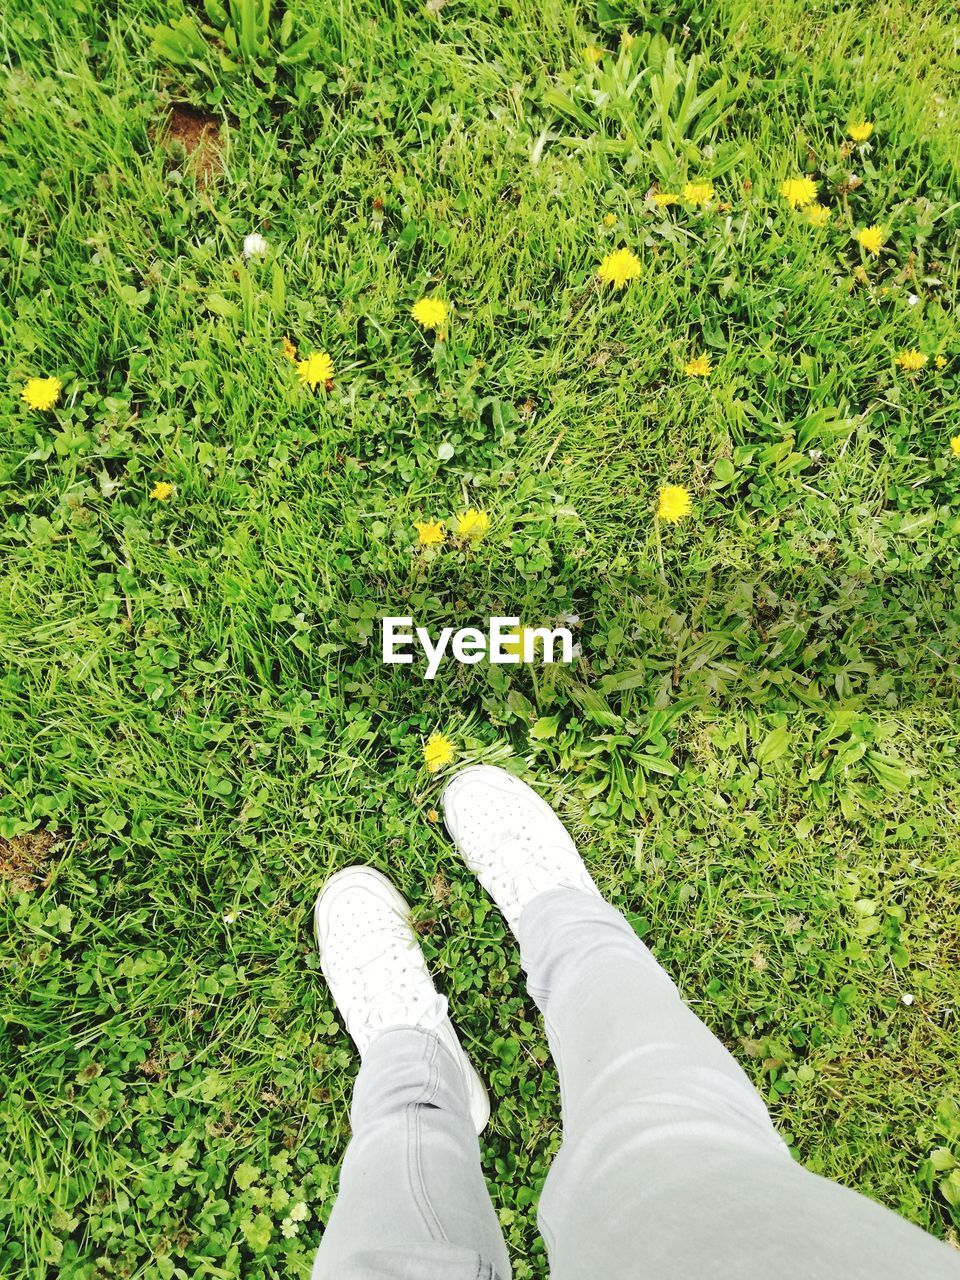 grass, shoe, low section, human leg, high angle view, green color, one person, standing, day, field, outdoors, real people, human body part, nature, flower, close-up, people